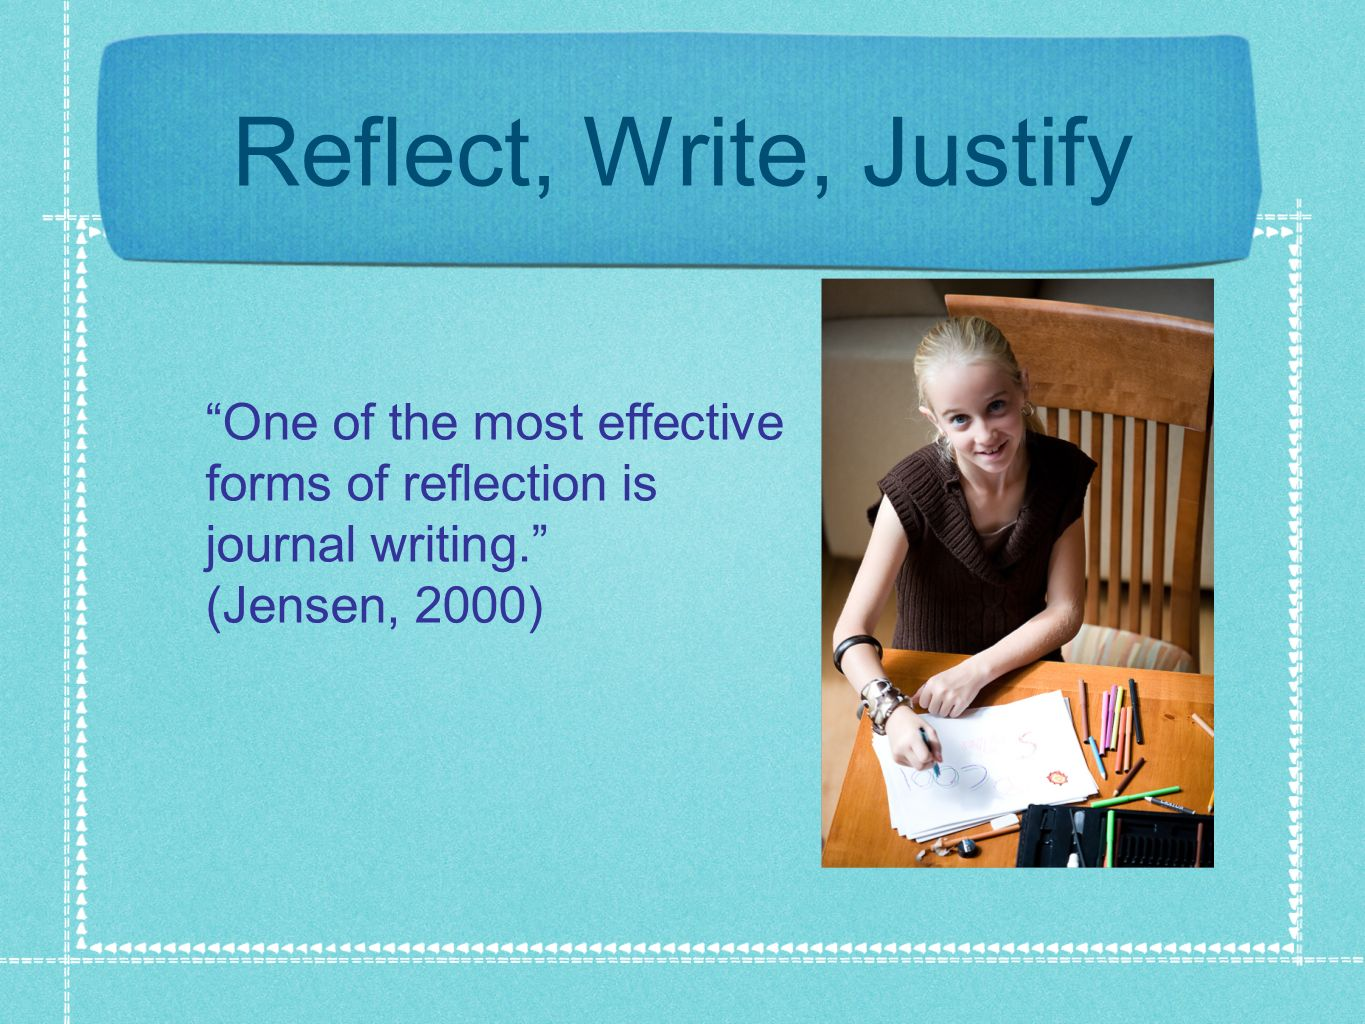 Reflect, Write, Justify One of the most effective forms of reflection is journal writing.